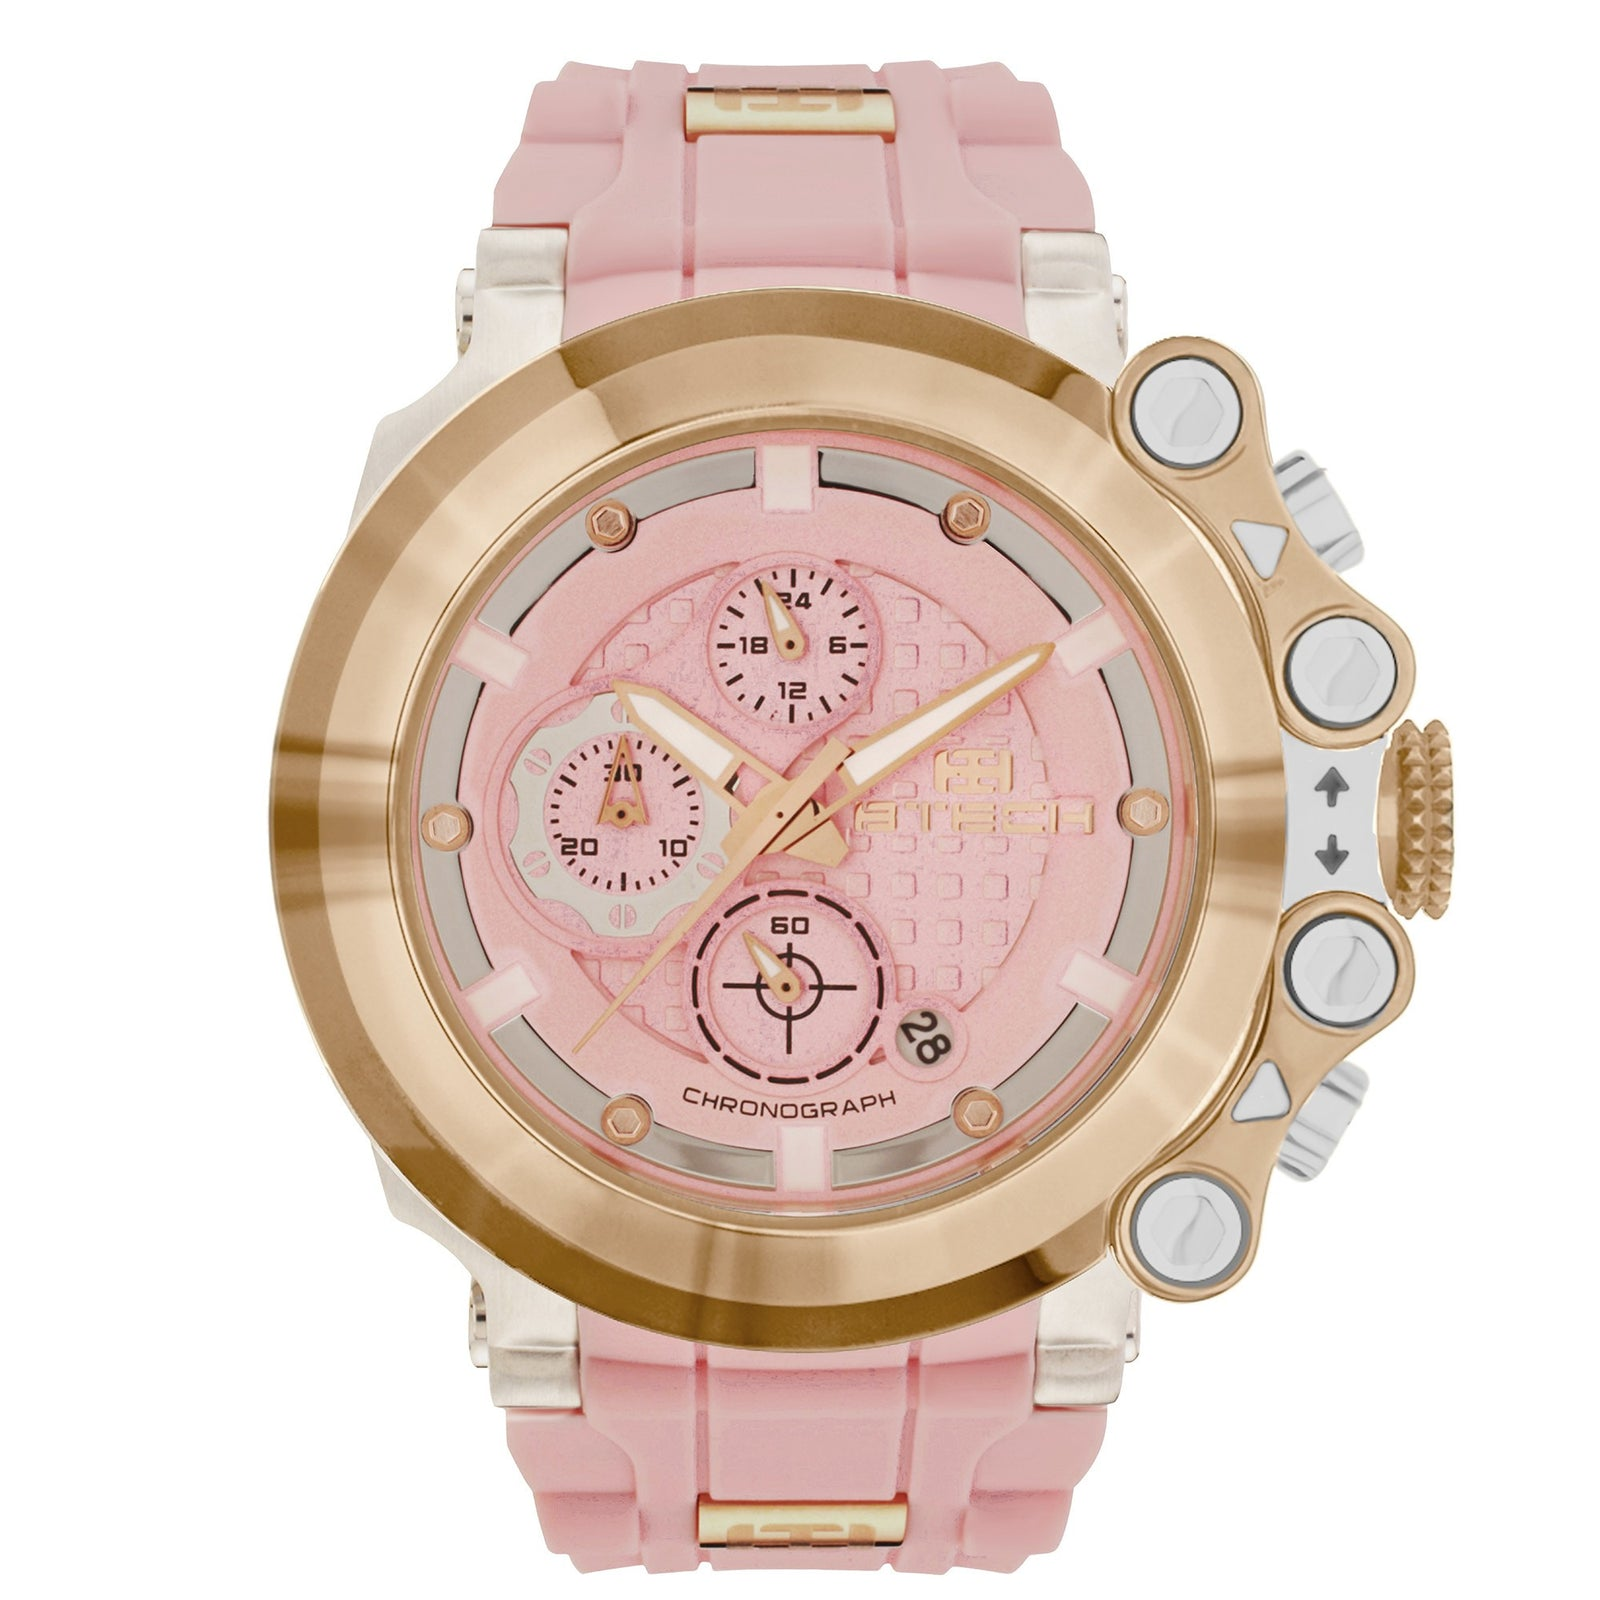 BTECH Cite Chrono Blush Pink Women Watch (BT-CC-313-12)